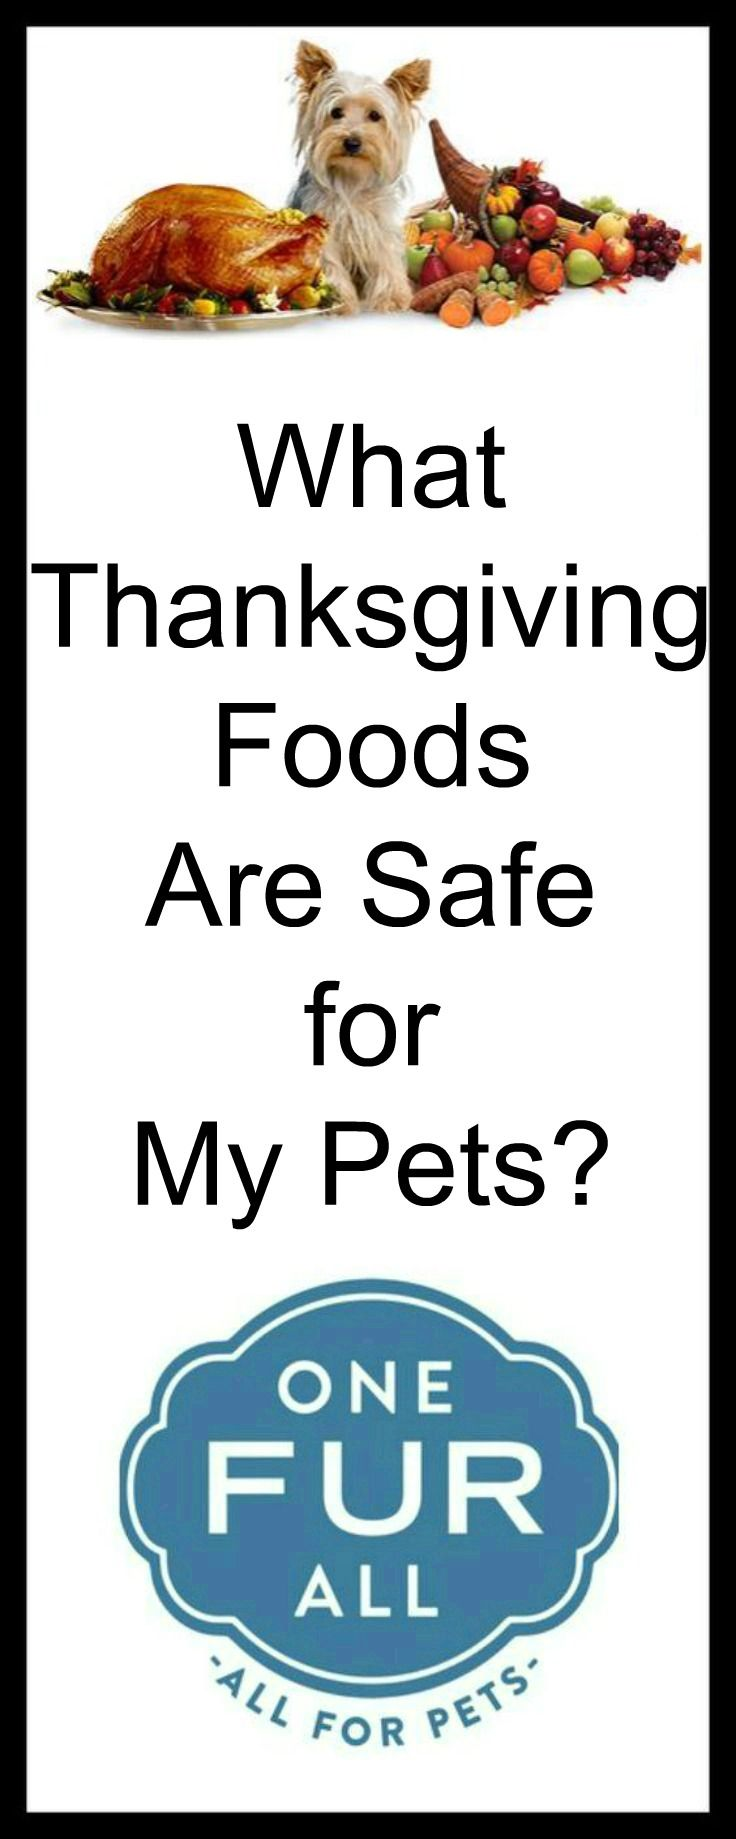 Thanksgiving offers you and your family members a chance to enjoy a delicious homemade feast, but what about your pets? #pets #food